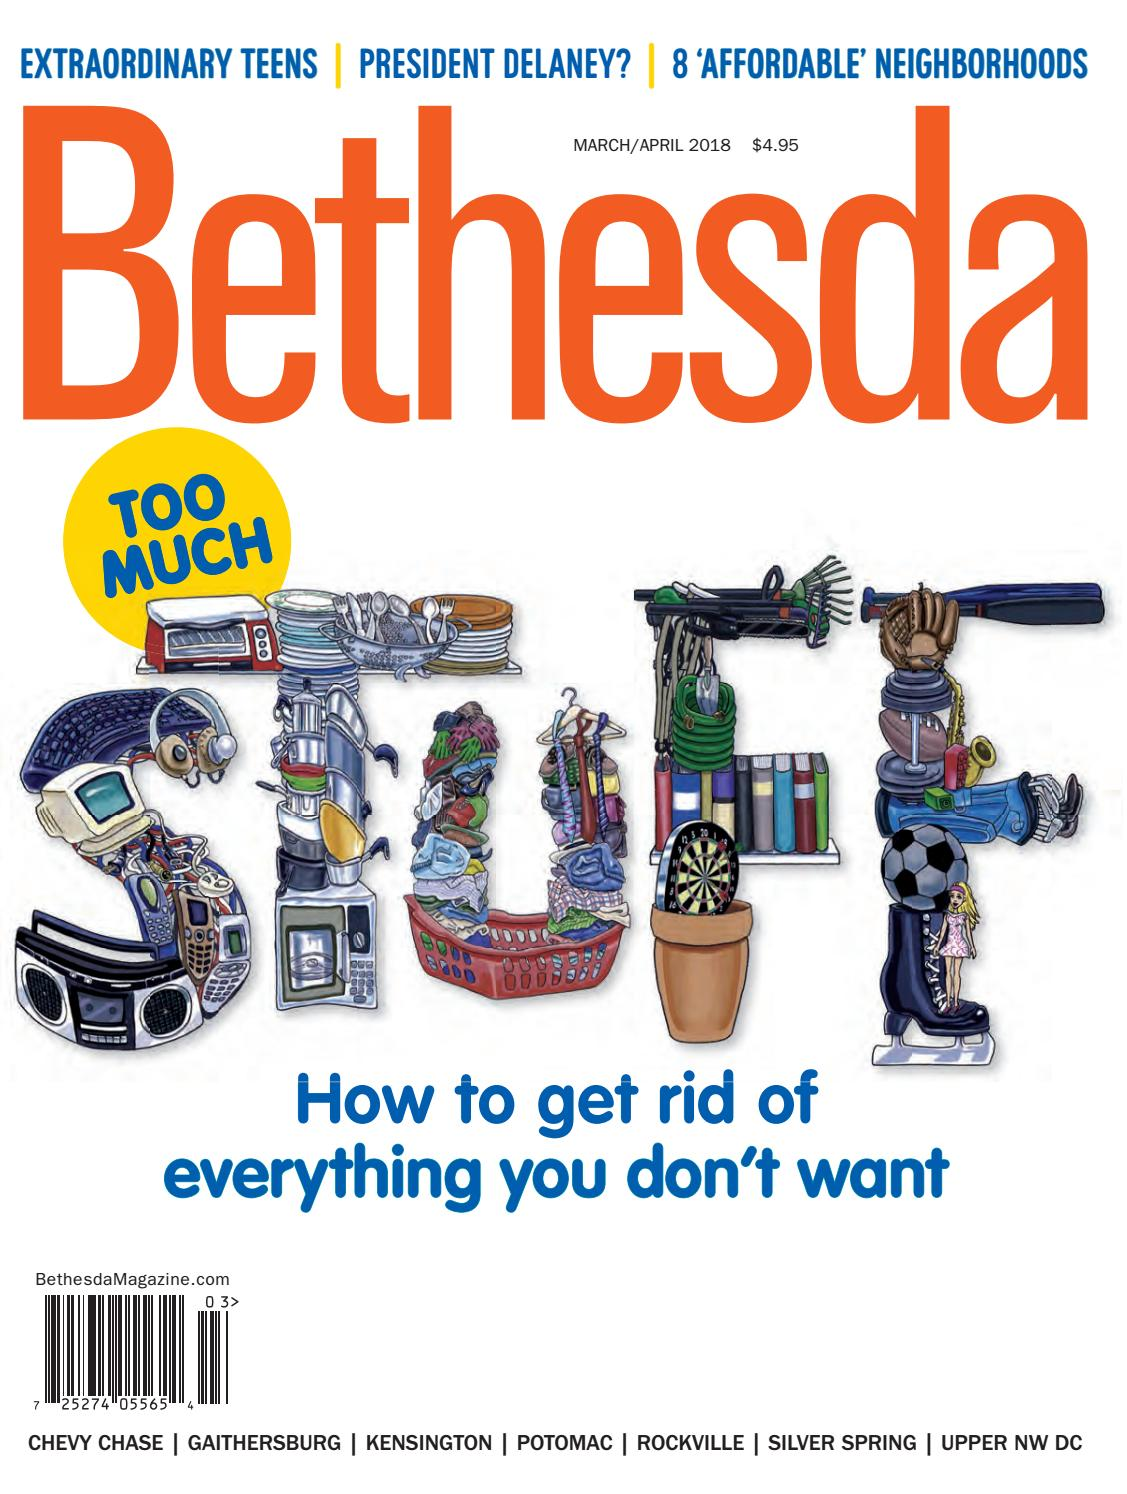 Bethesda Magazine: March-April 2018 by Bethesda Magazine - issuu